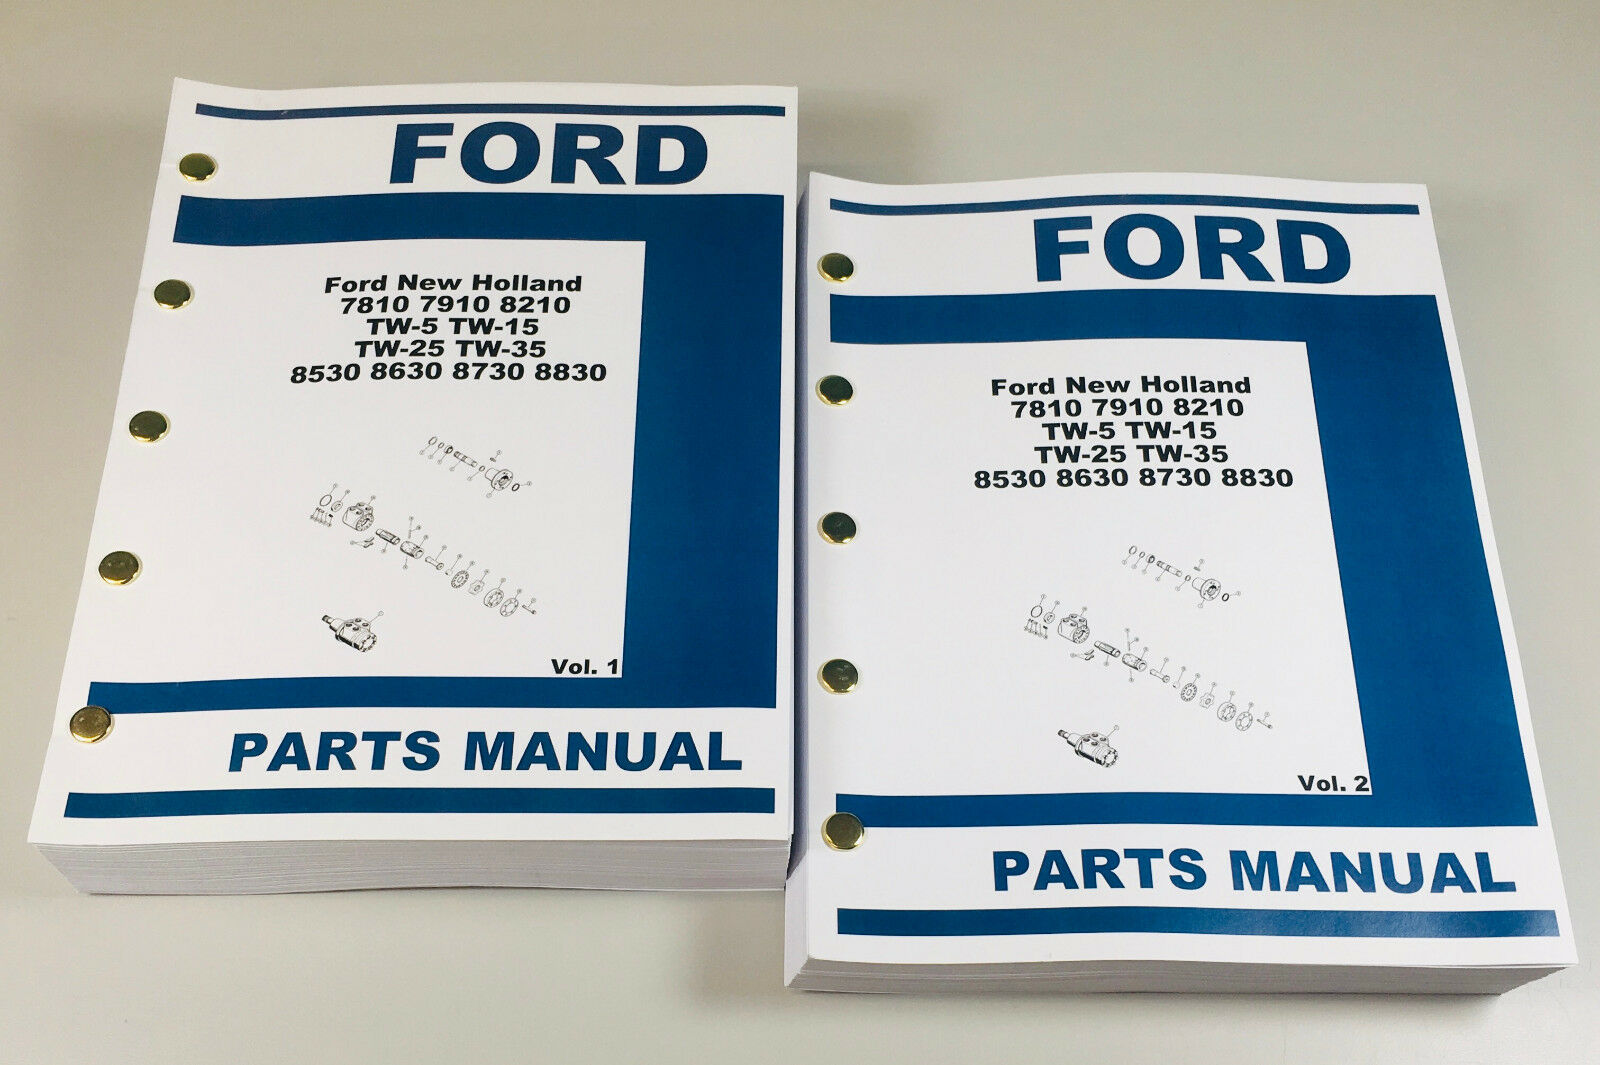 8530 8630 8730 8830. Complete Parts Manual